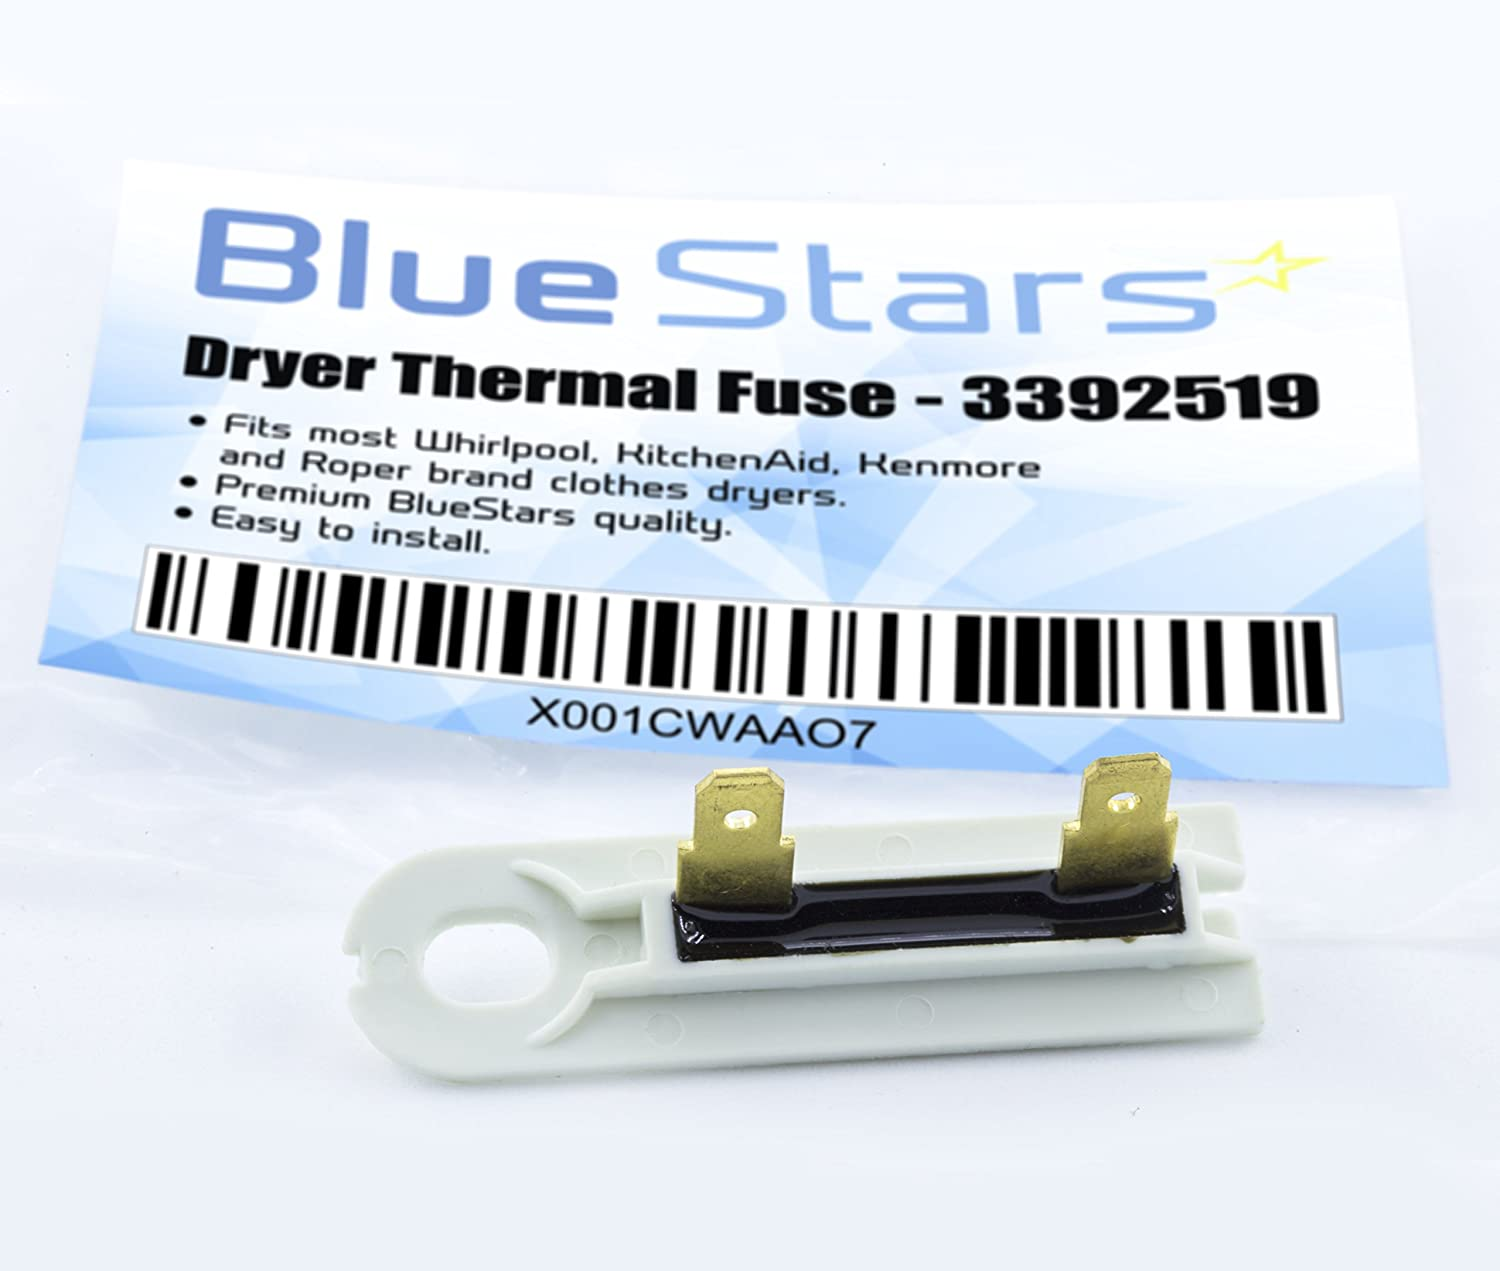 3392519 Dryer Thermal Fuse Replacement Part By Blue Push In Box House For Stars Exact Fit Whirlpool Kenmore Home Improvement